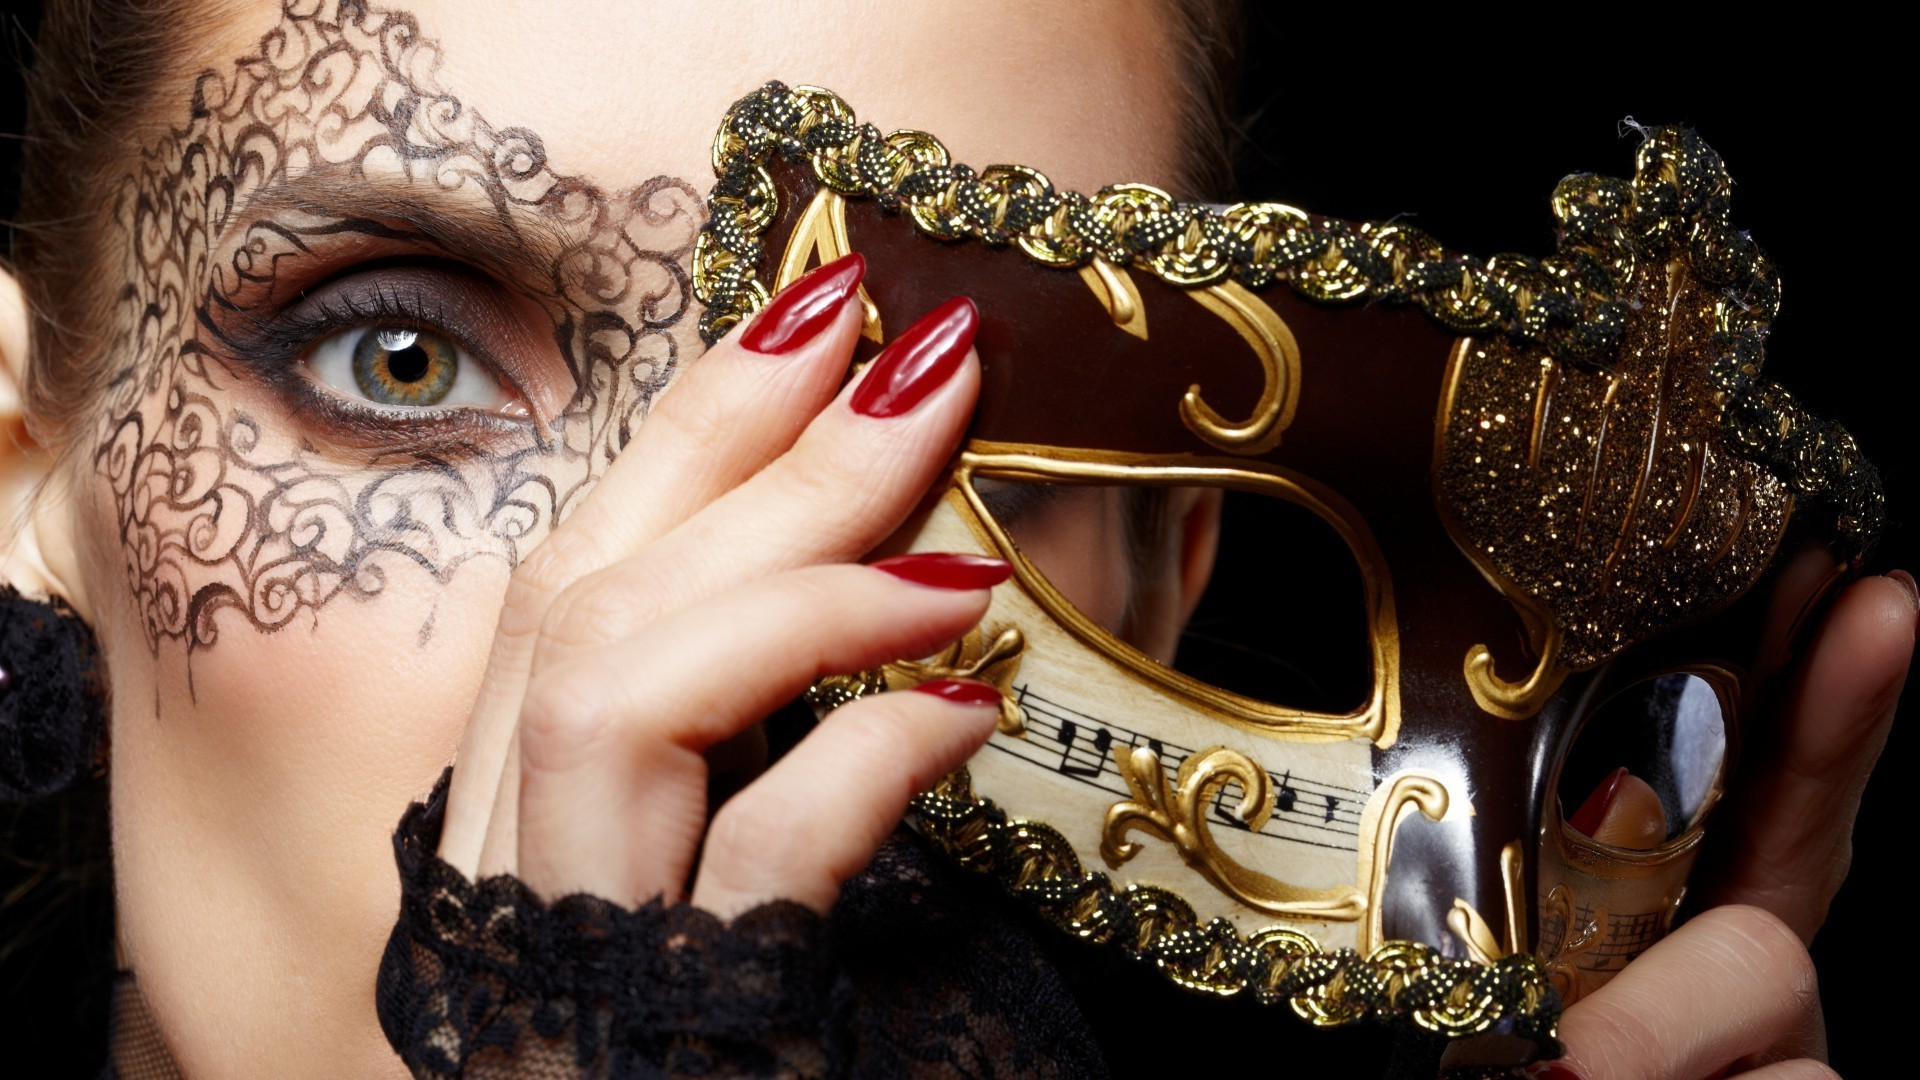 remove the masks  android wallpapers for free